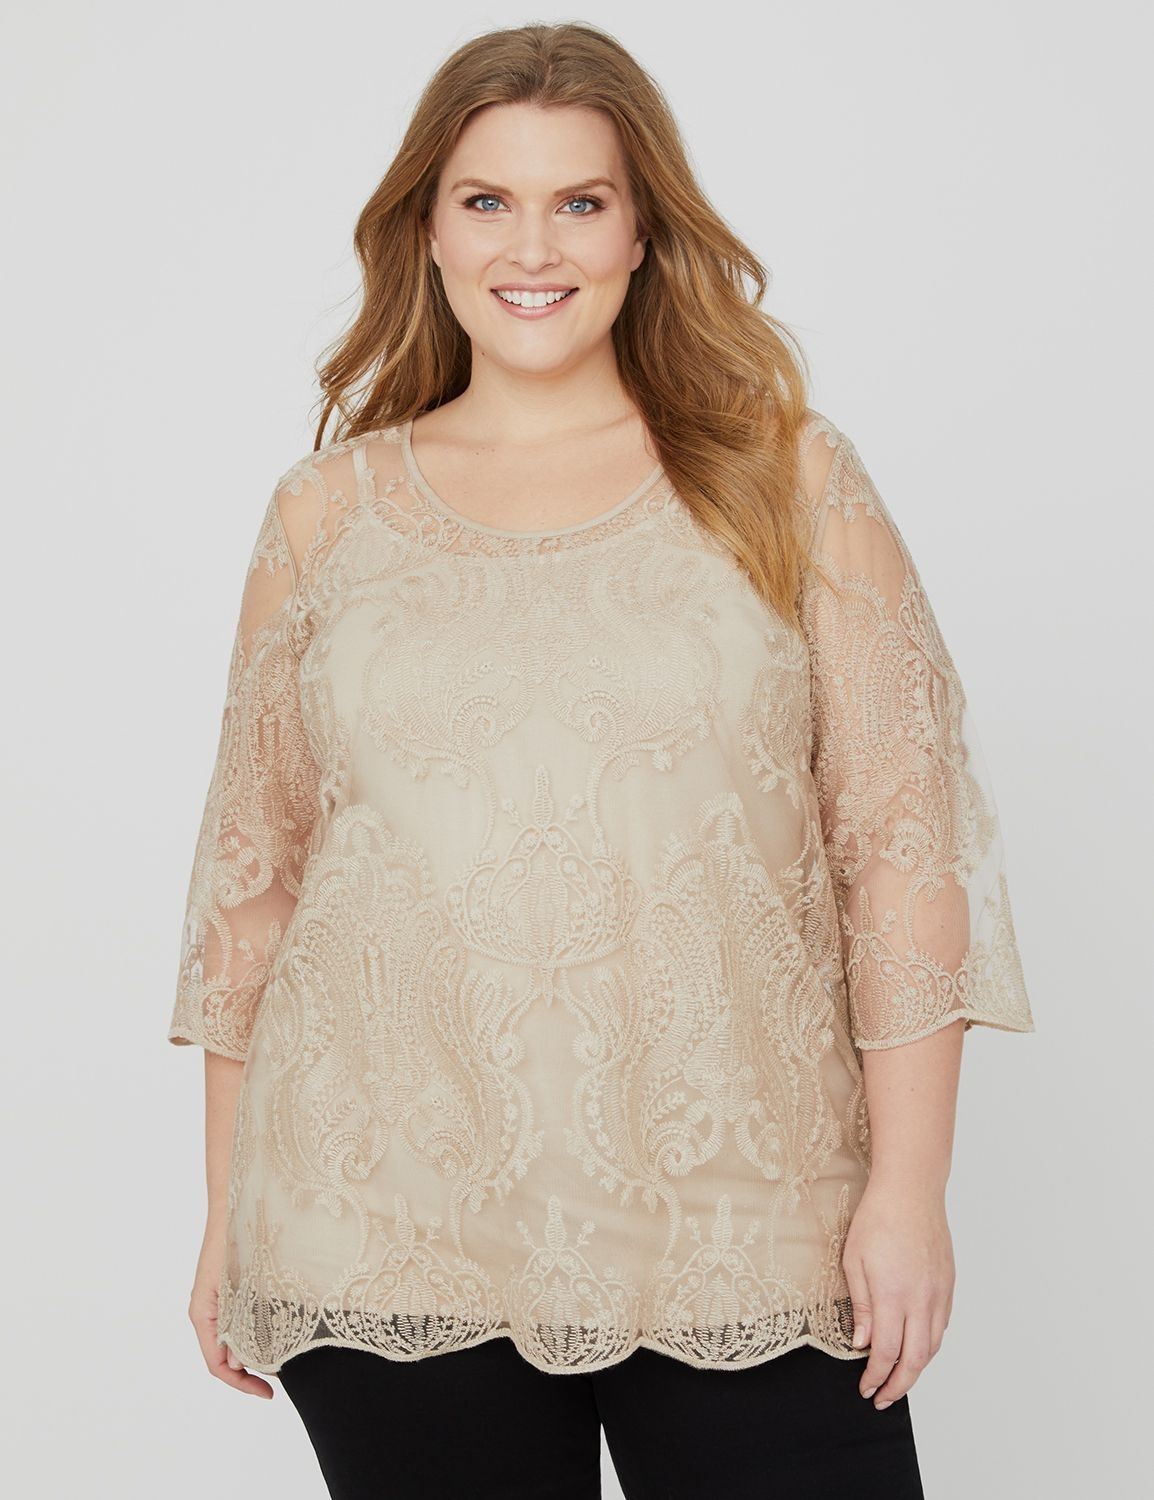 Soft Afterglow Top 1091394 Nuance Mesh Embroidered Tun MP-300103678